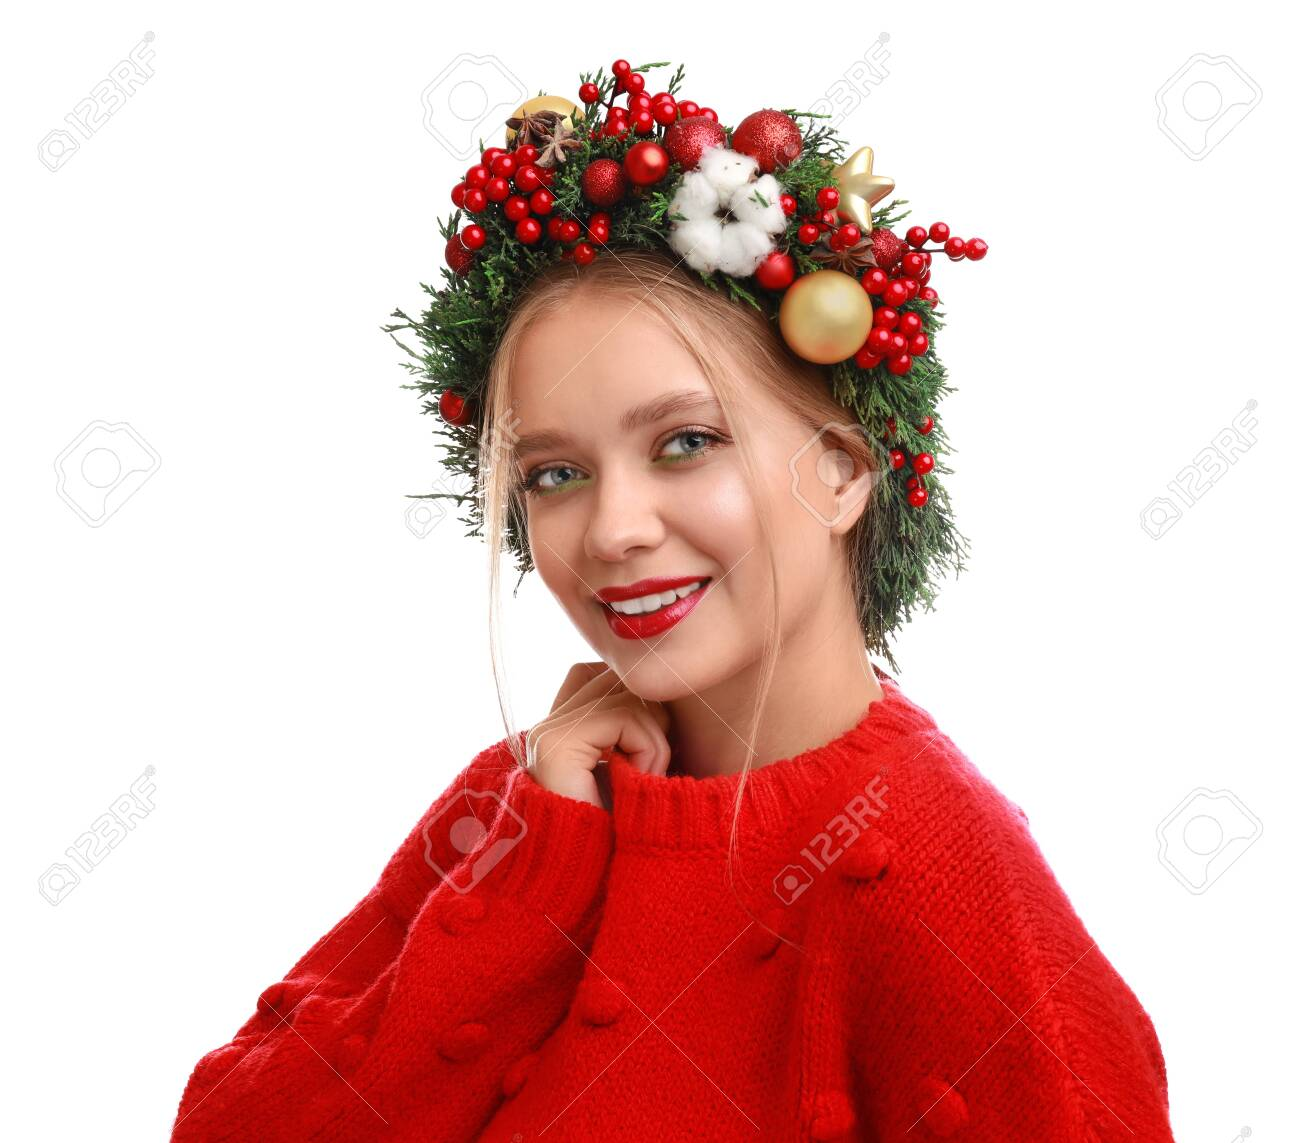 Beautiful young woman wearing Christmas wreath on white background - 129978872